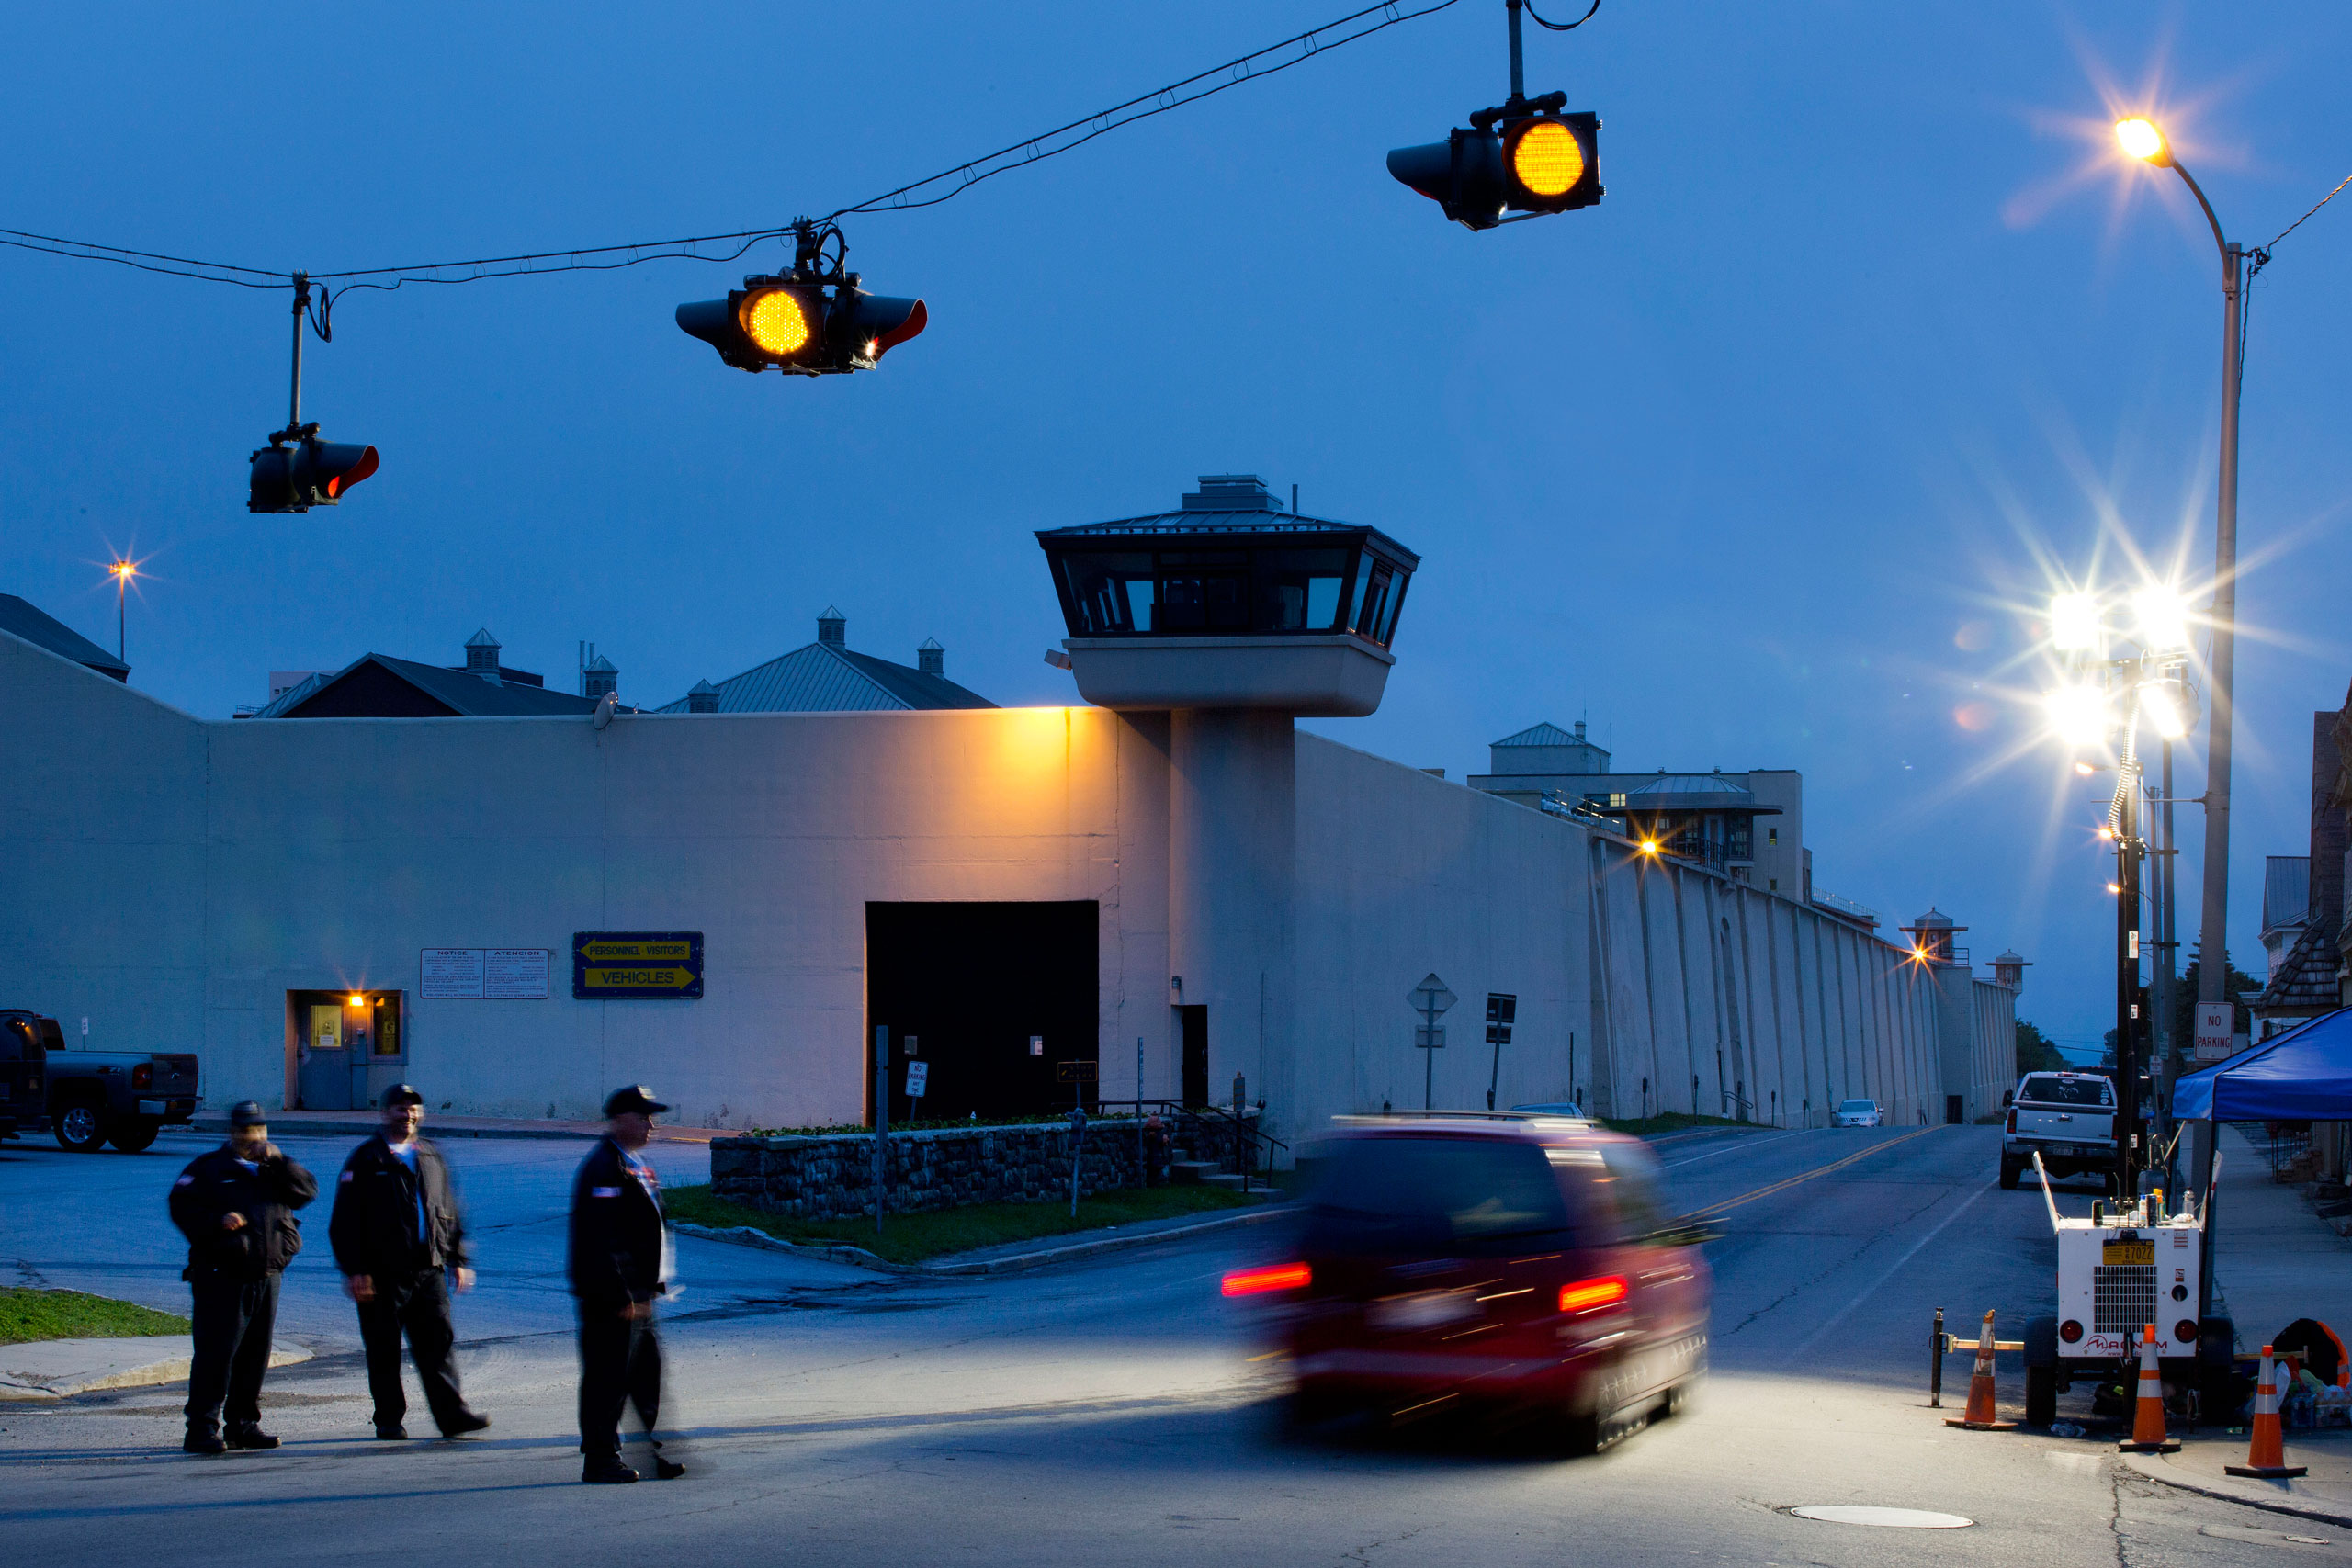 Corrections officers watch an intersection in front of Clinton Correctional Facility in Dannemora, N.Y., on June 15, 2015.